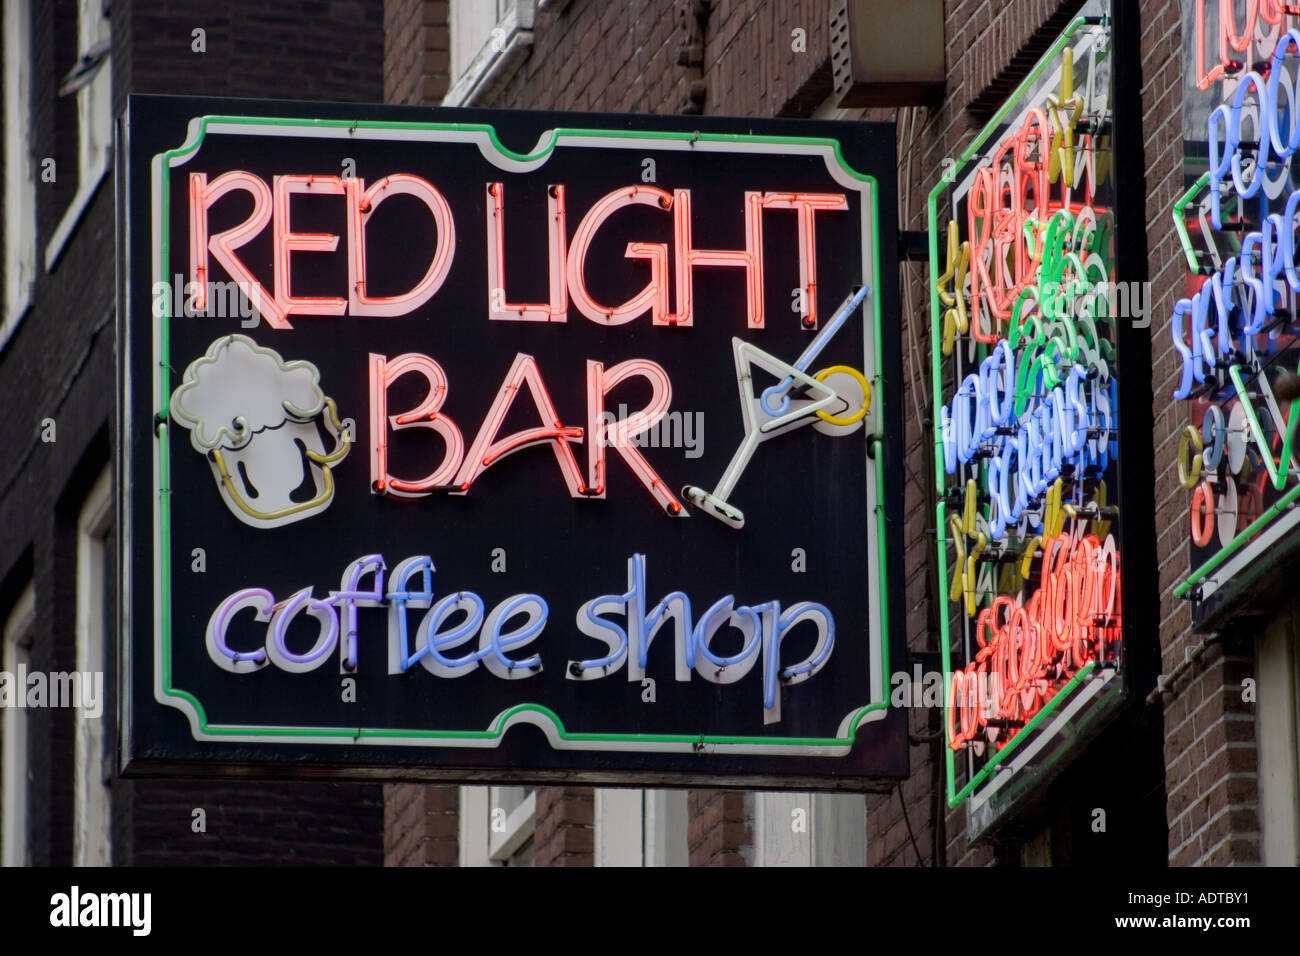 Red light bar amsterdam the netherlands stock photo royalty free red light bar amsterdam the netherlands aloadofball Image collections